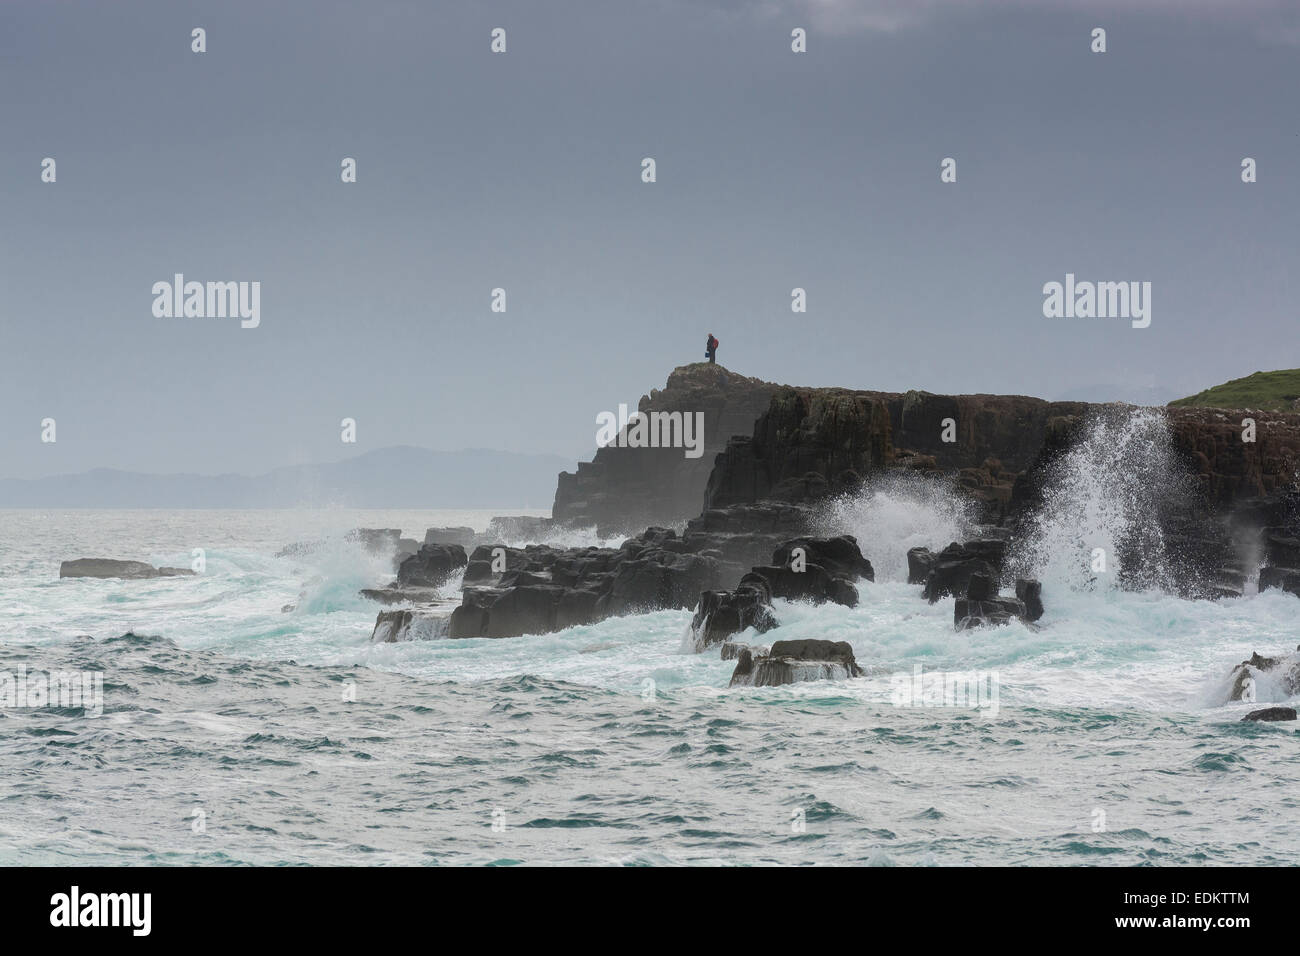 staffin rocks surf waves crashing spume headland bay Stock Photo